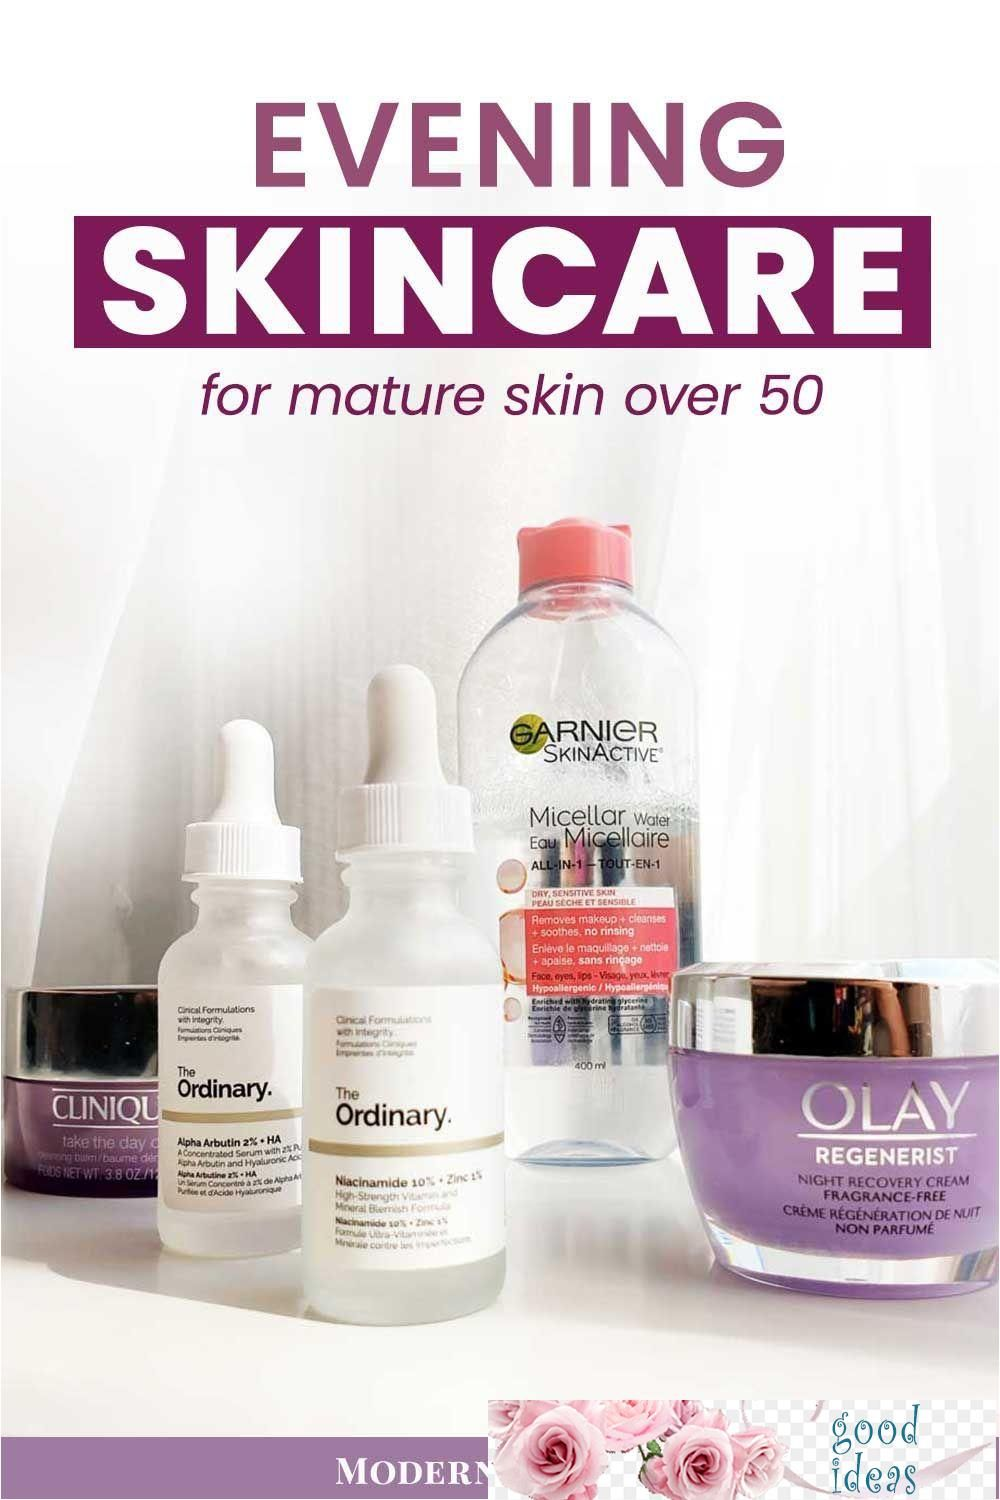 Jun 20 2020 My Affordable Evening Skincare Routine 2020 For Sensitive Dry M In 2020 Evening Skin Care Routine Effective Skin Care Products Simple Skincare Routine